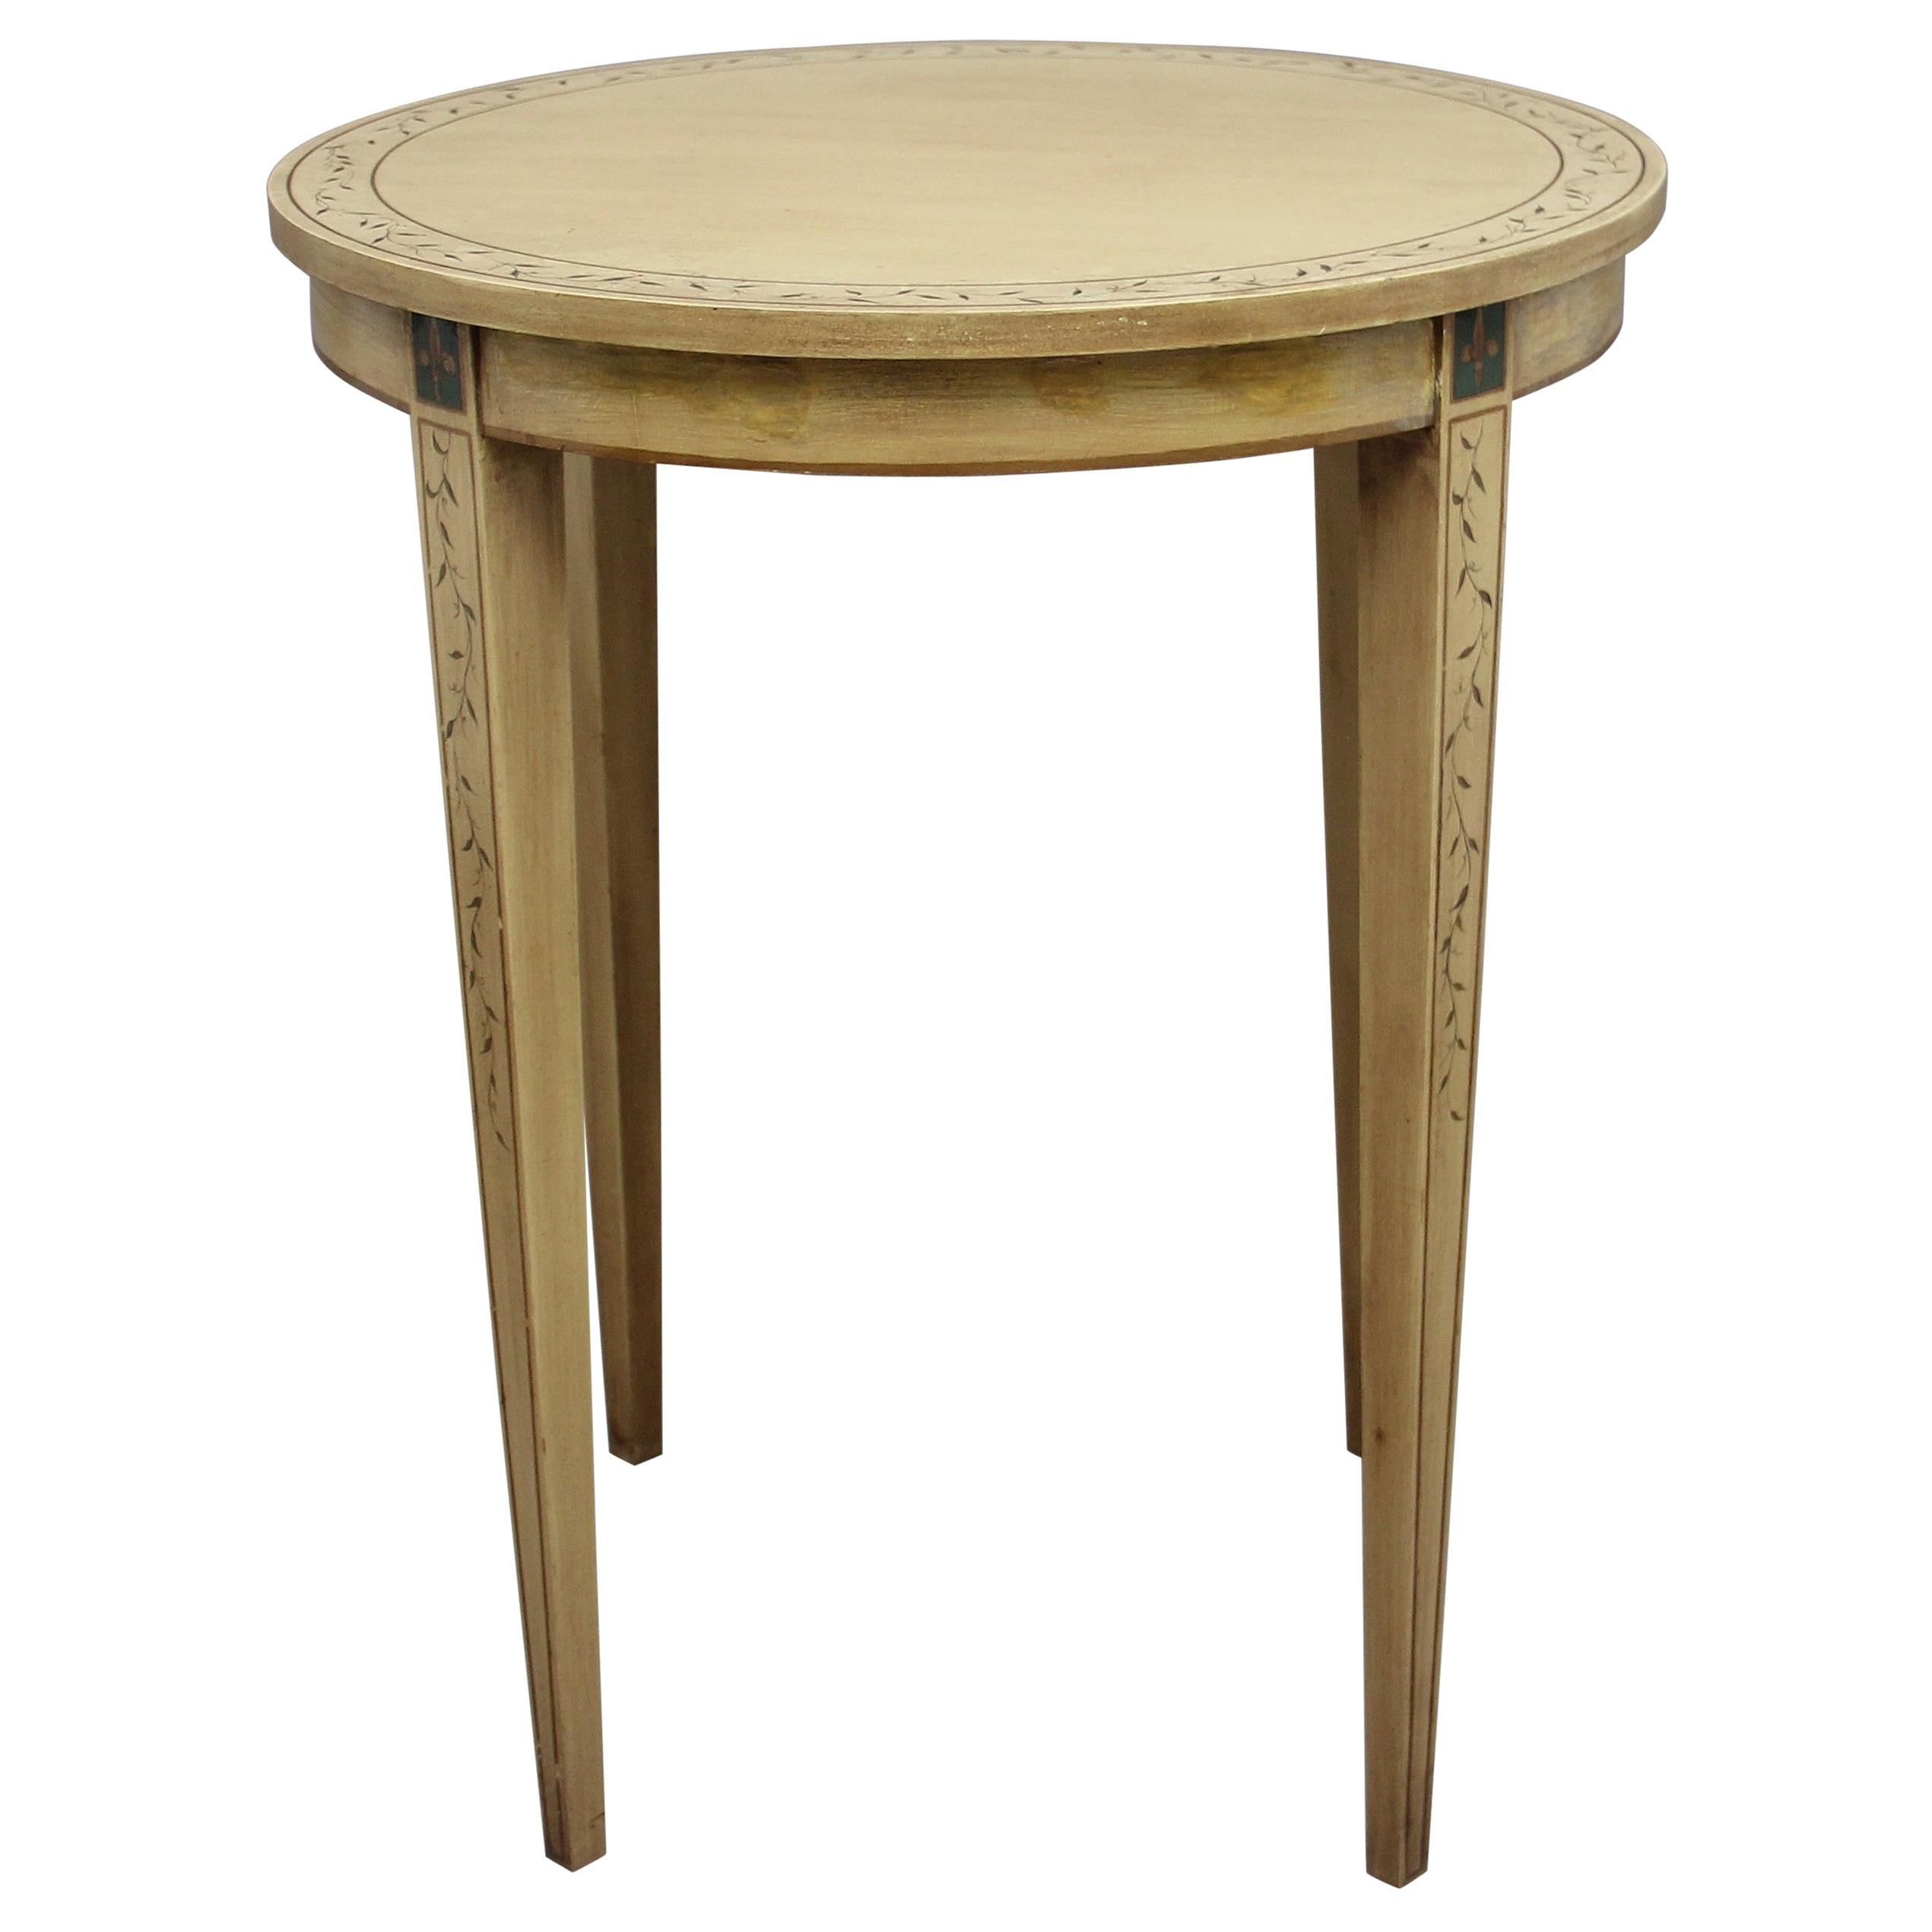 Mid-20th Century Painted Table